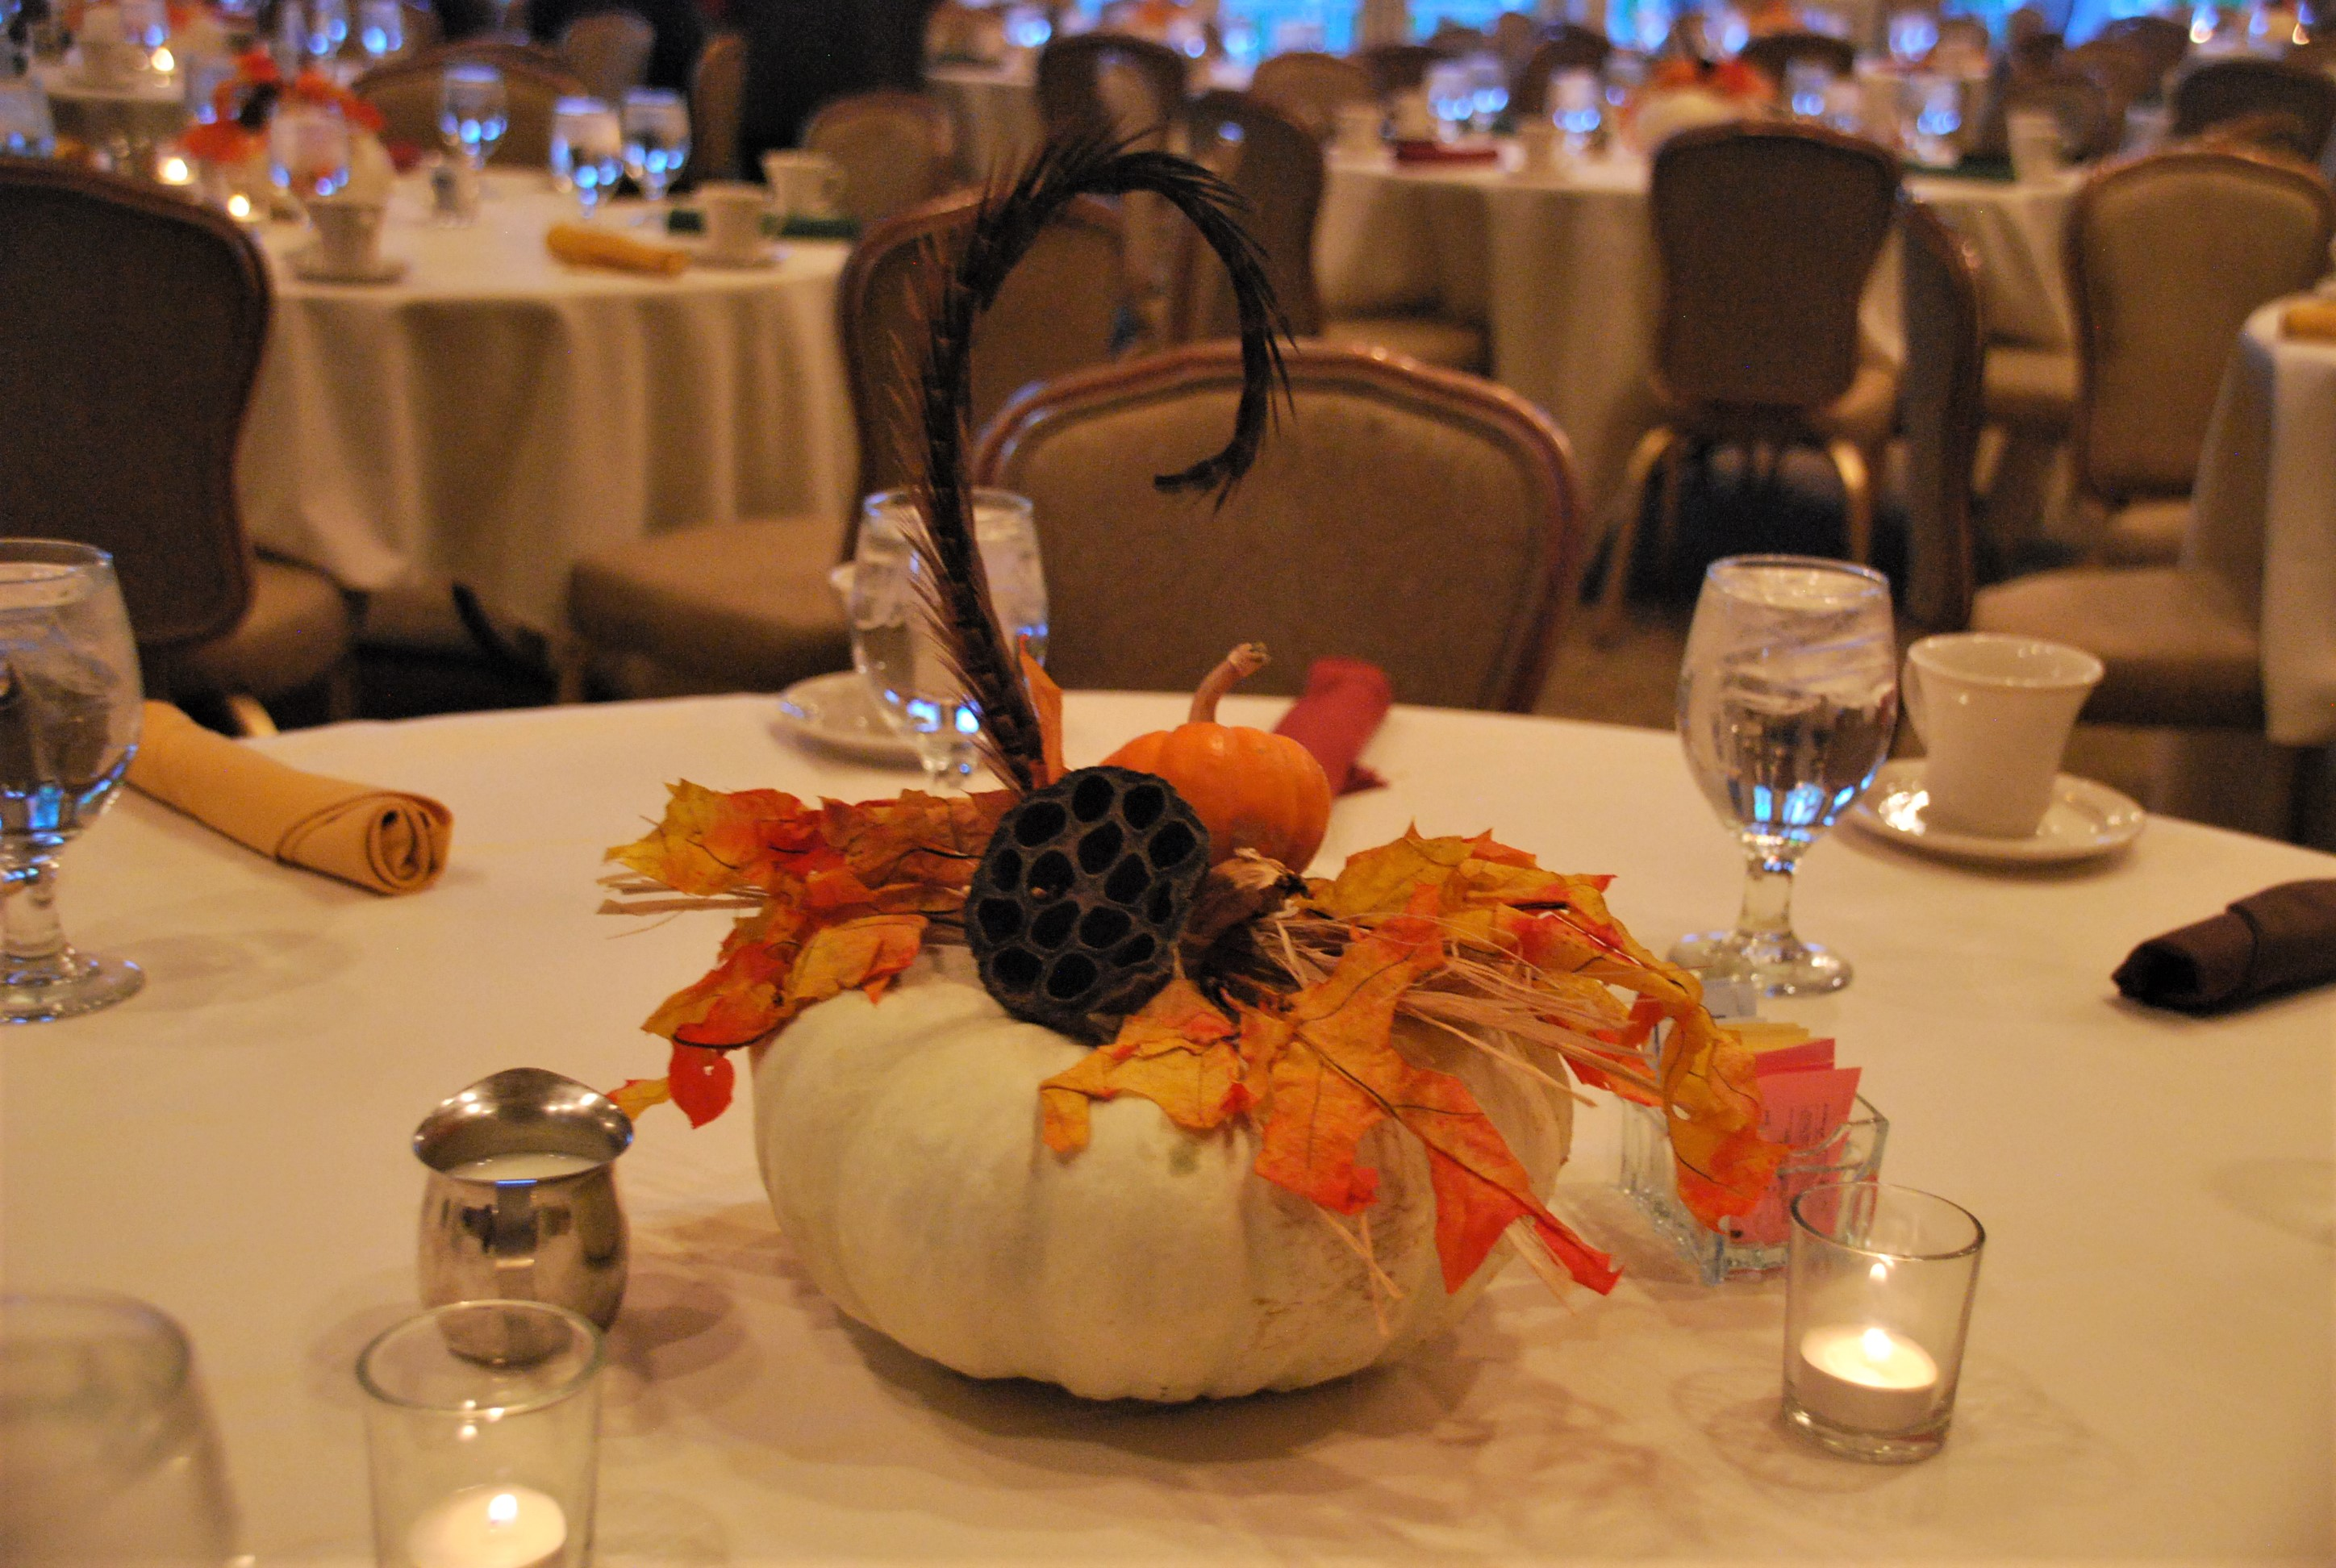 Festive fall centerpiece